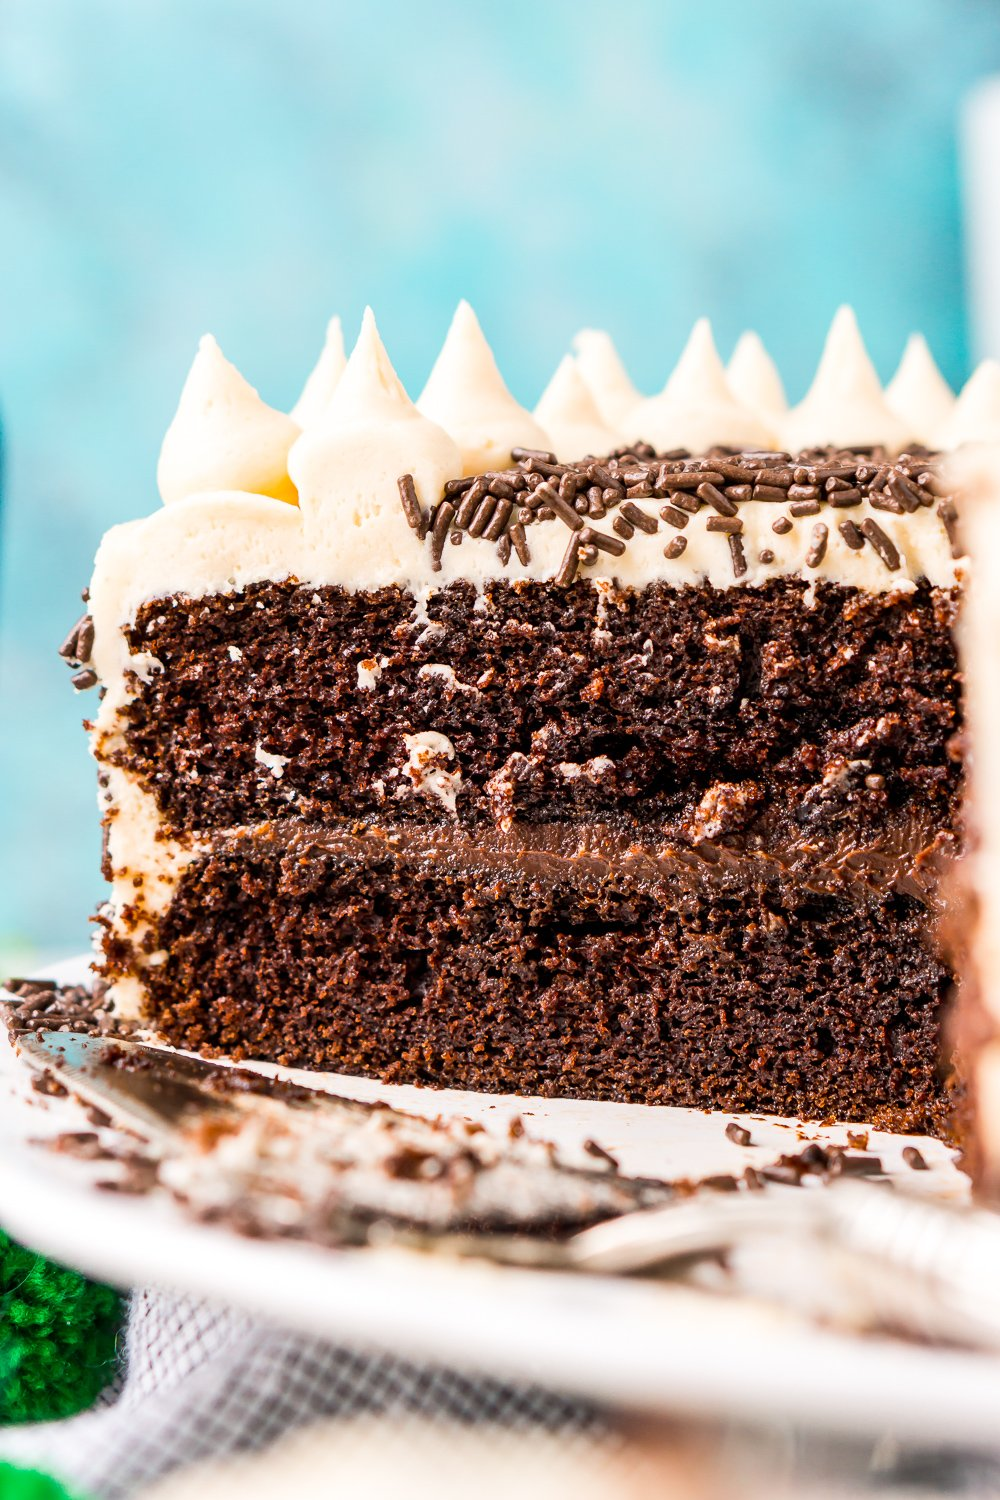 Chocolate Guinness Cake that's been sliced into and you can see the layers of chocolate cake, chocolate ganache, and Irish Cream Buttercream against a blue background.